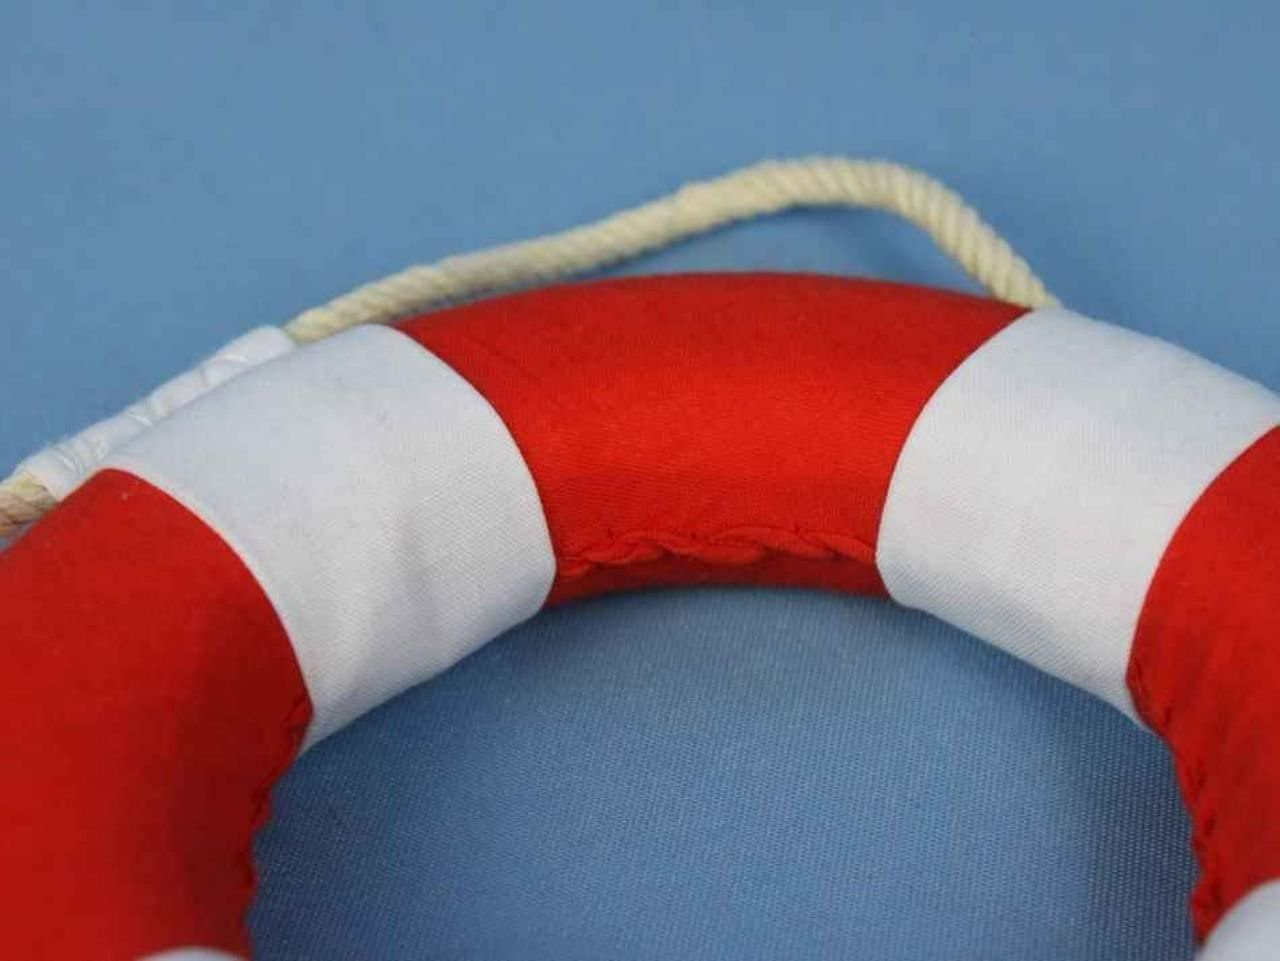 10 Hampton Nautical  Vibrant Red Lifering with White Bands